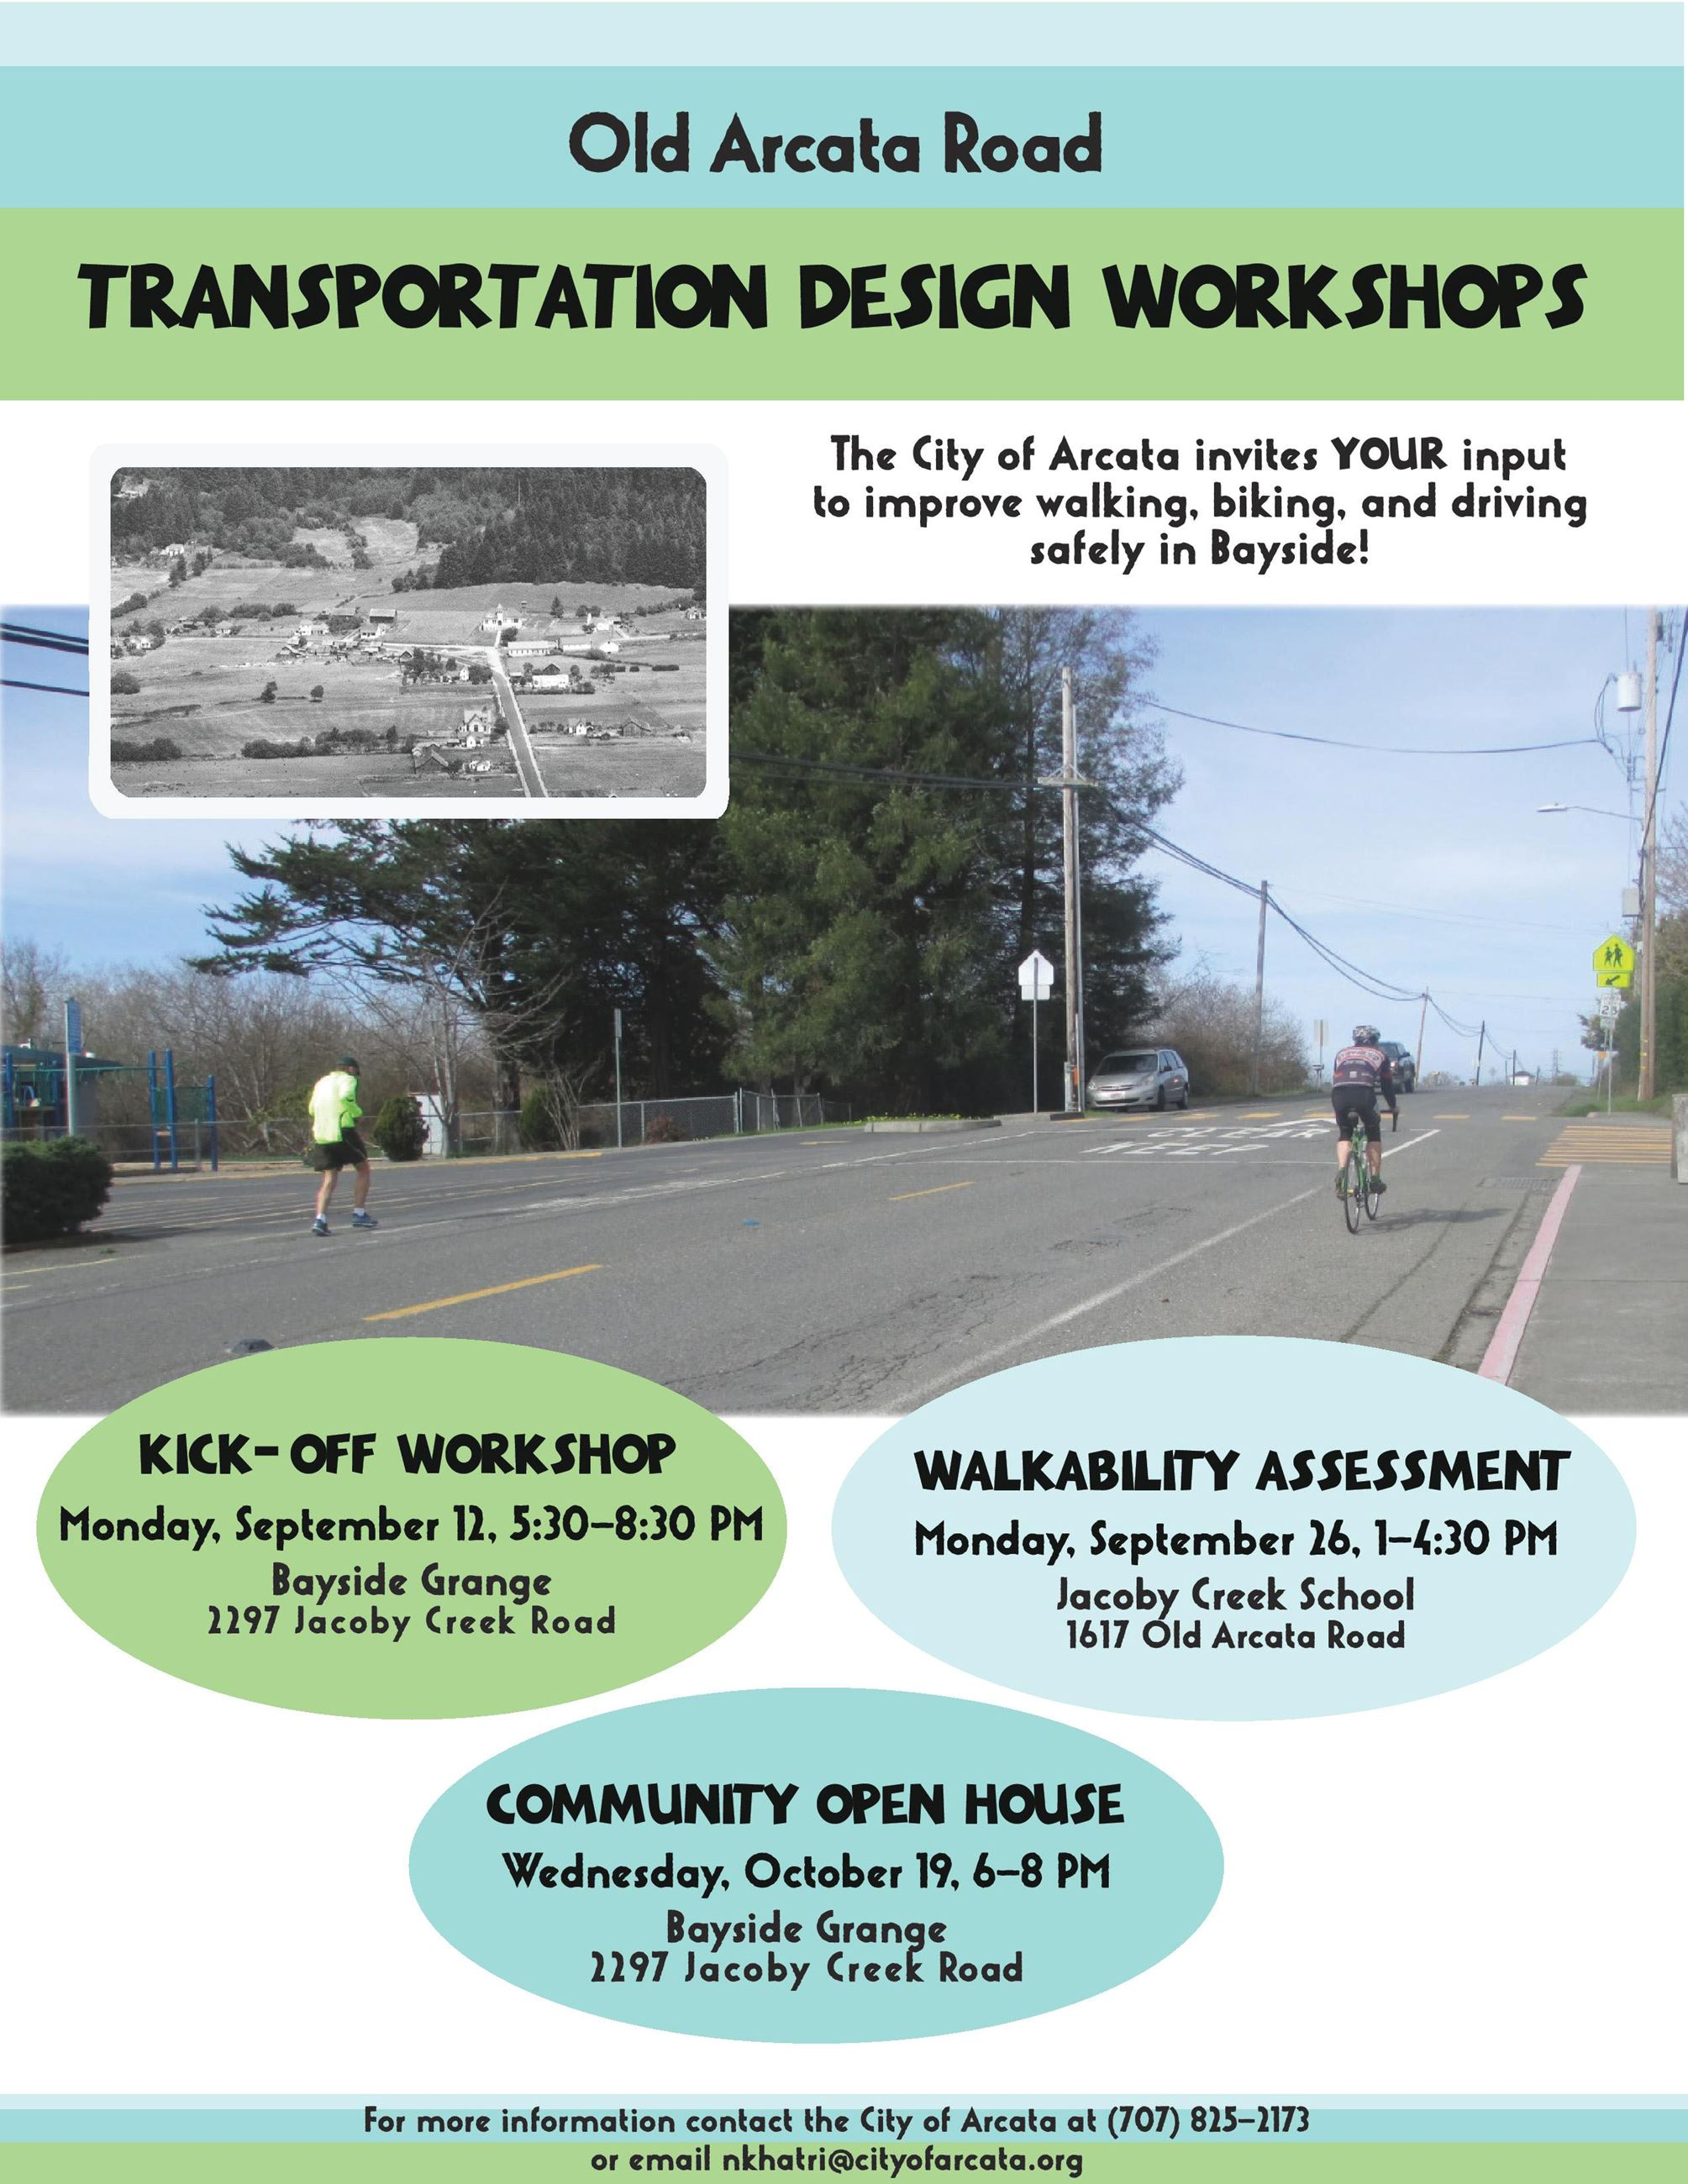 Old Arcata Road Design Workshops Flier